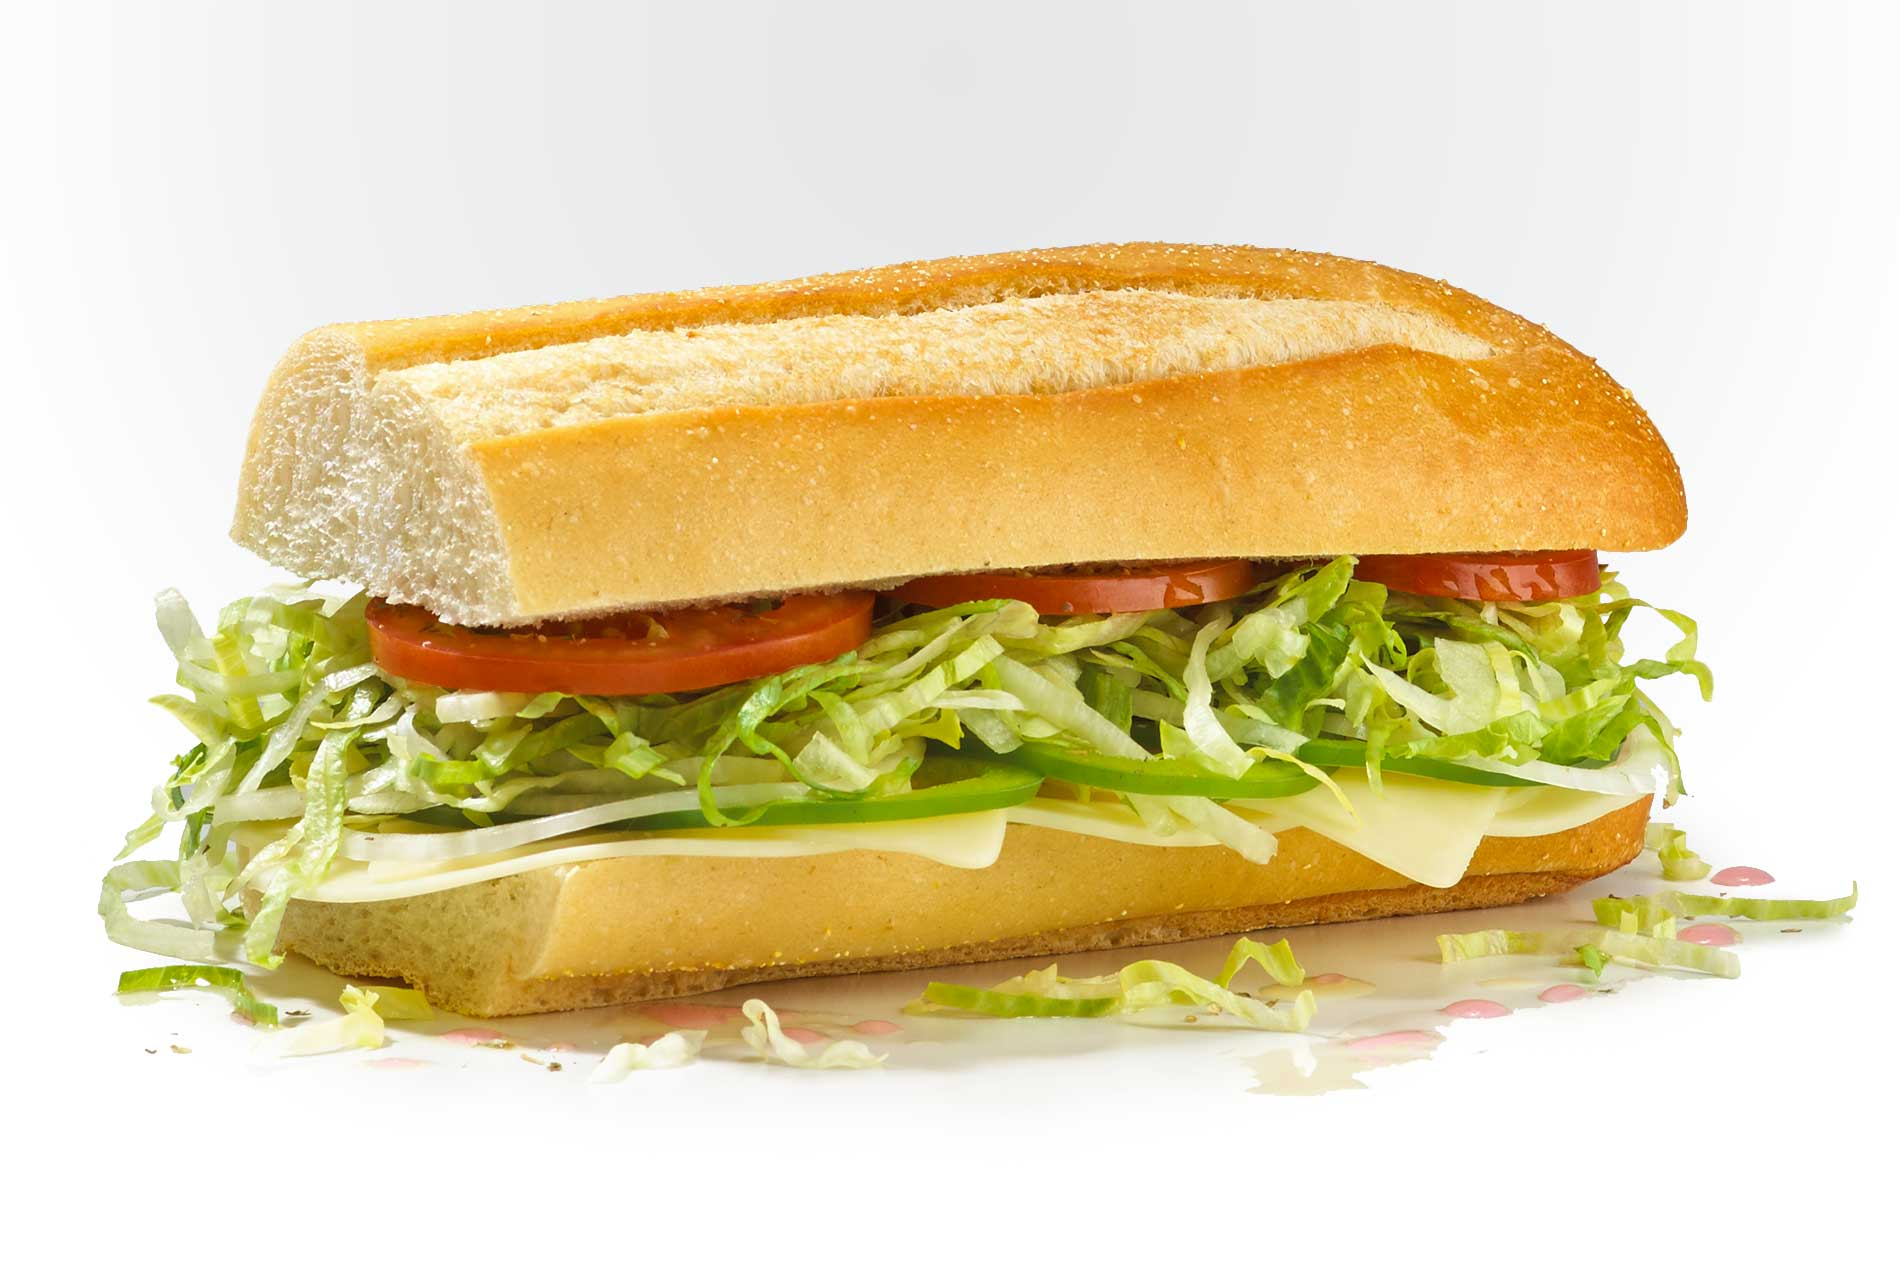 #14 The Veggie - Cold Subs